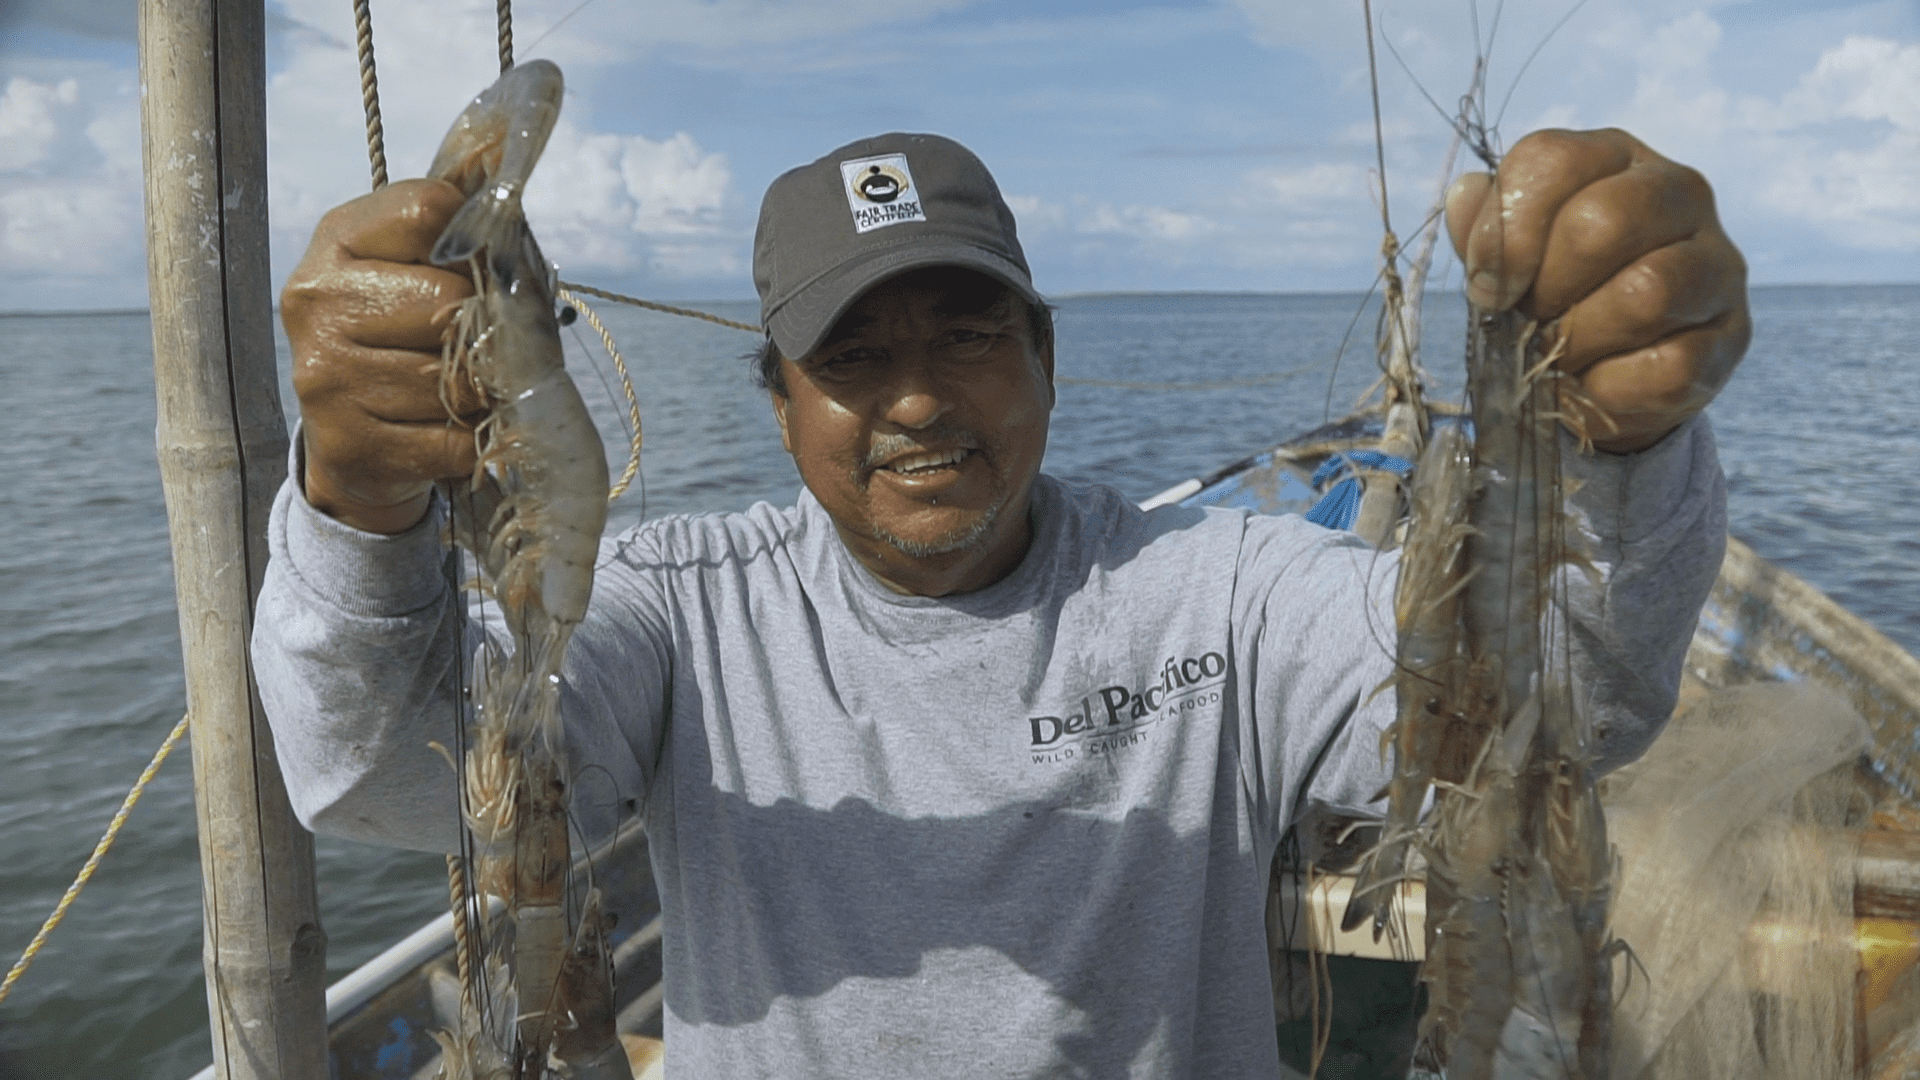 SFG Shrimp Fisherman